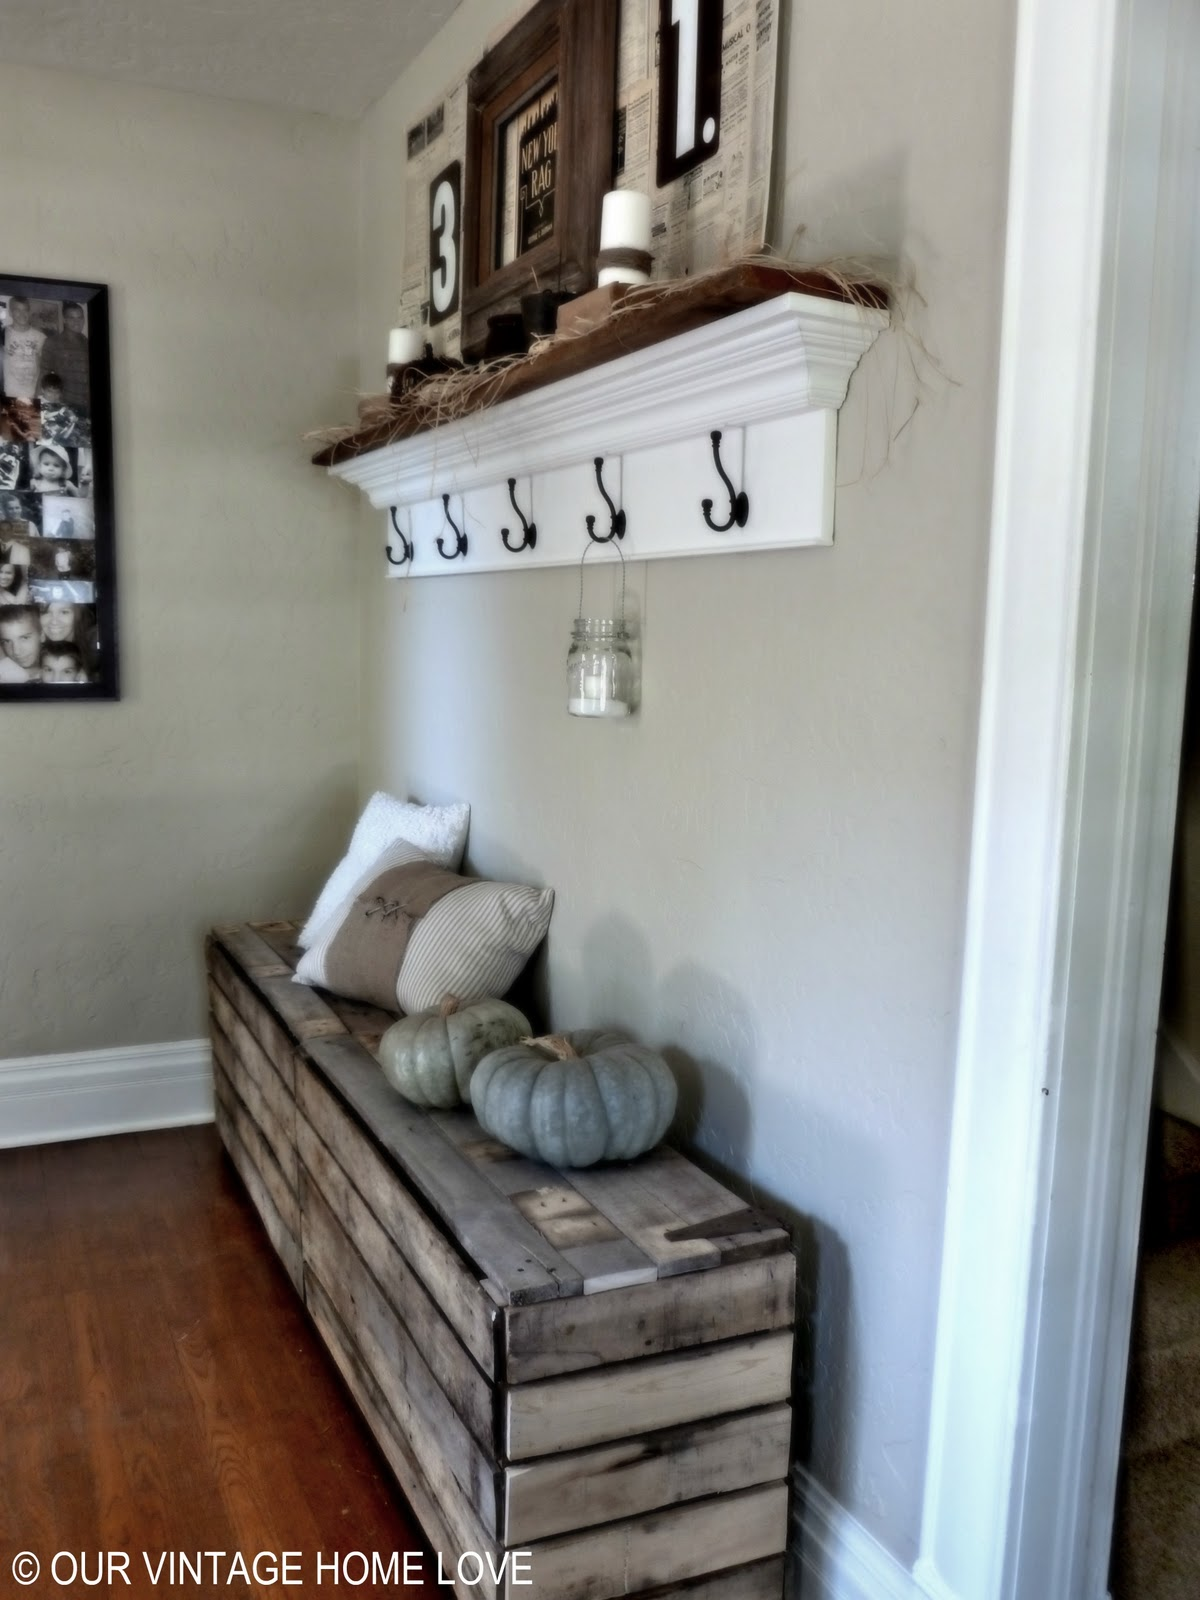 vintage home love rustic pallet bench. Black Bedroom Furniture Sets. Home Design Ideas